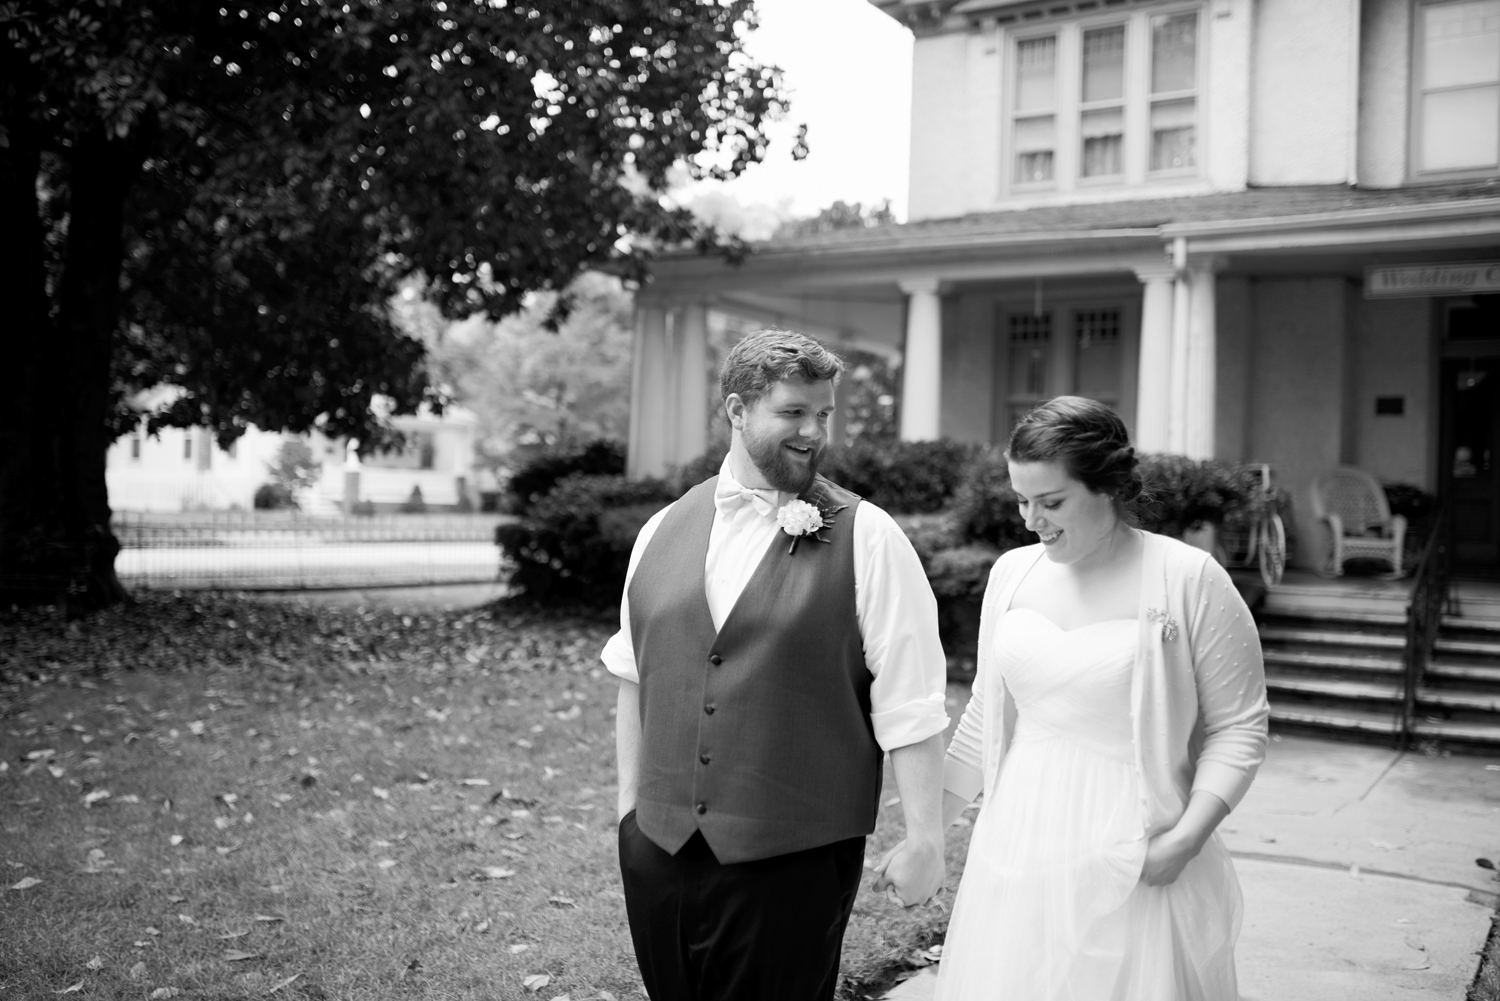 Bride and groom walk together outside a cute country house (black and white)